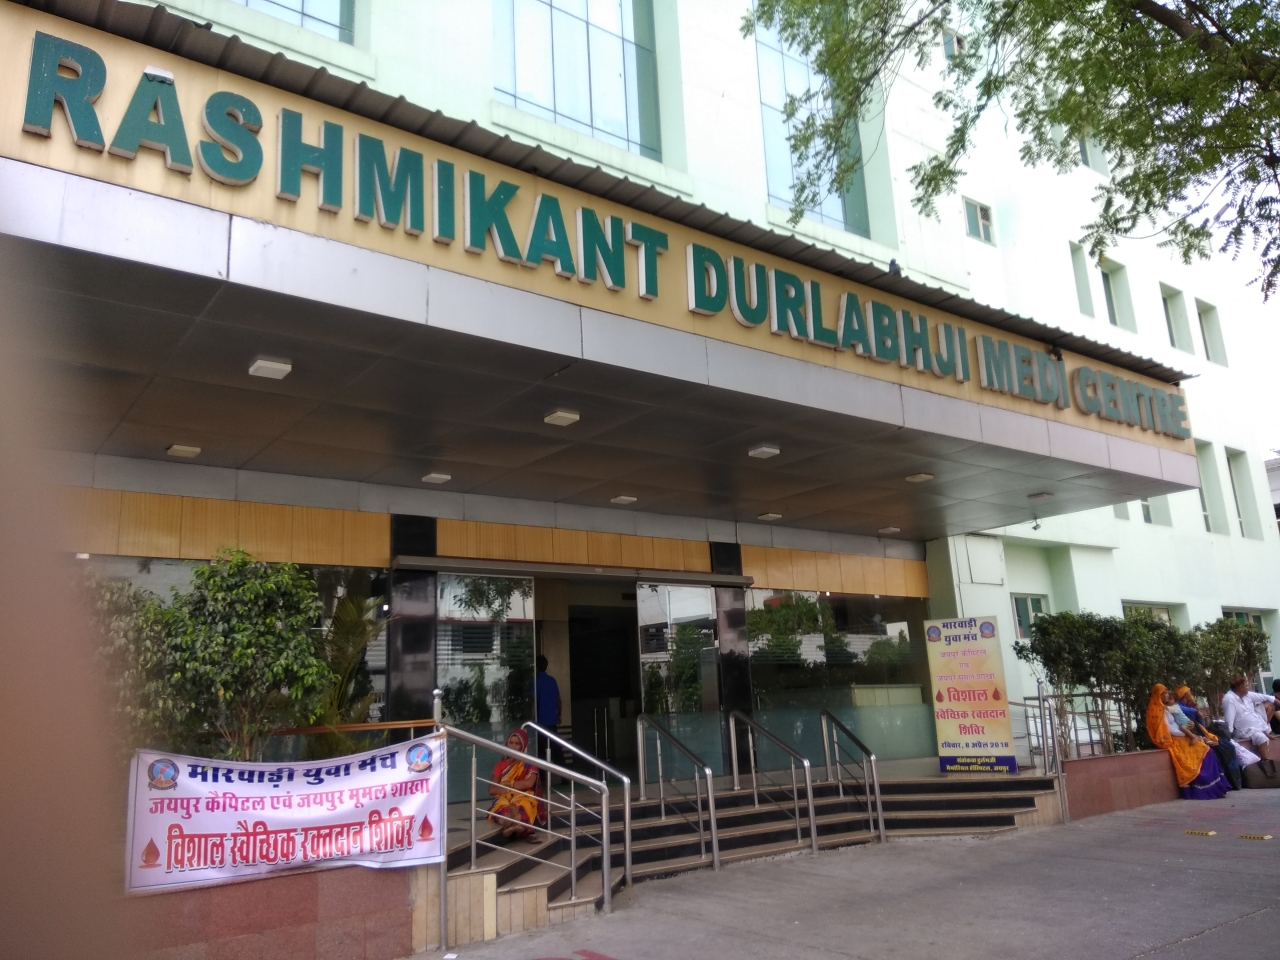 Rashmikant Durlabhji Medi Centre, a part of SDMH, where patients under BSBY get medical care in four departments.